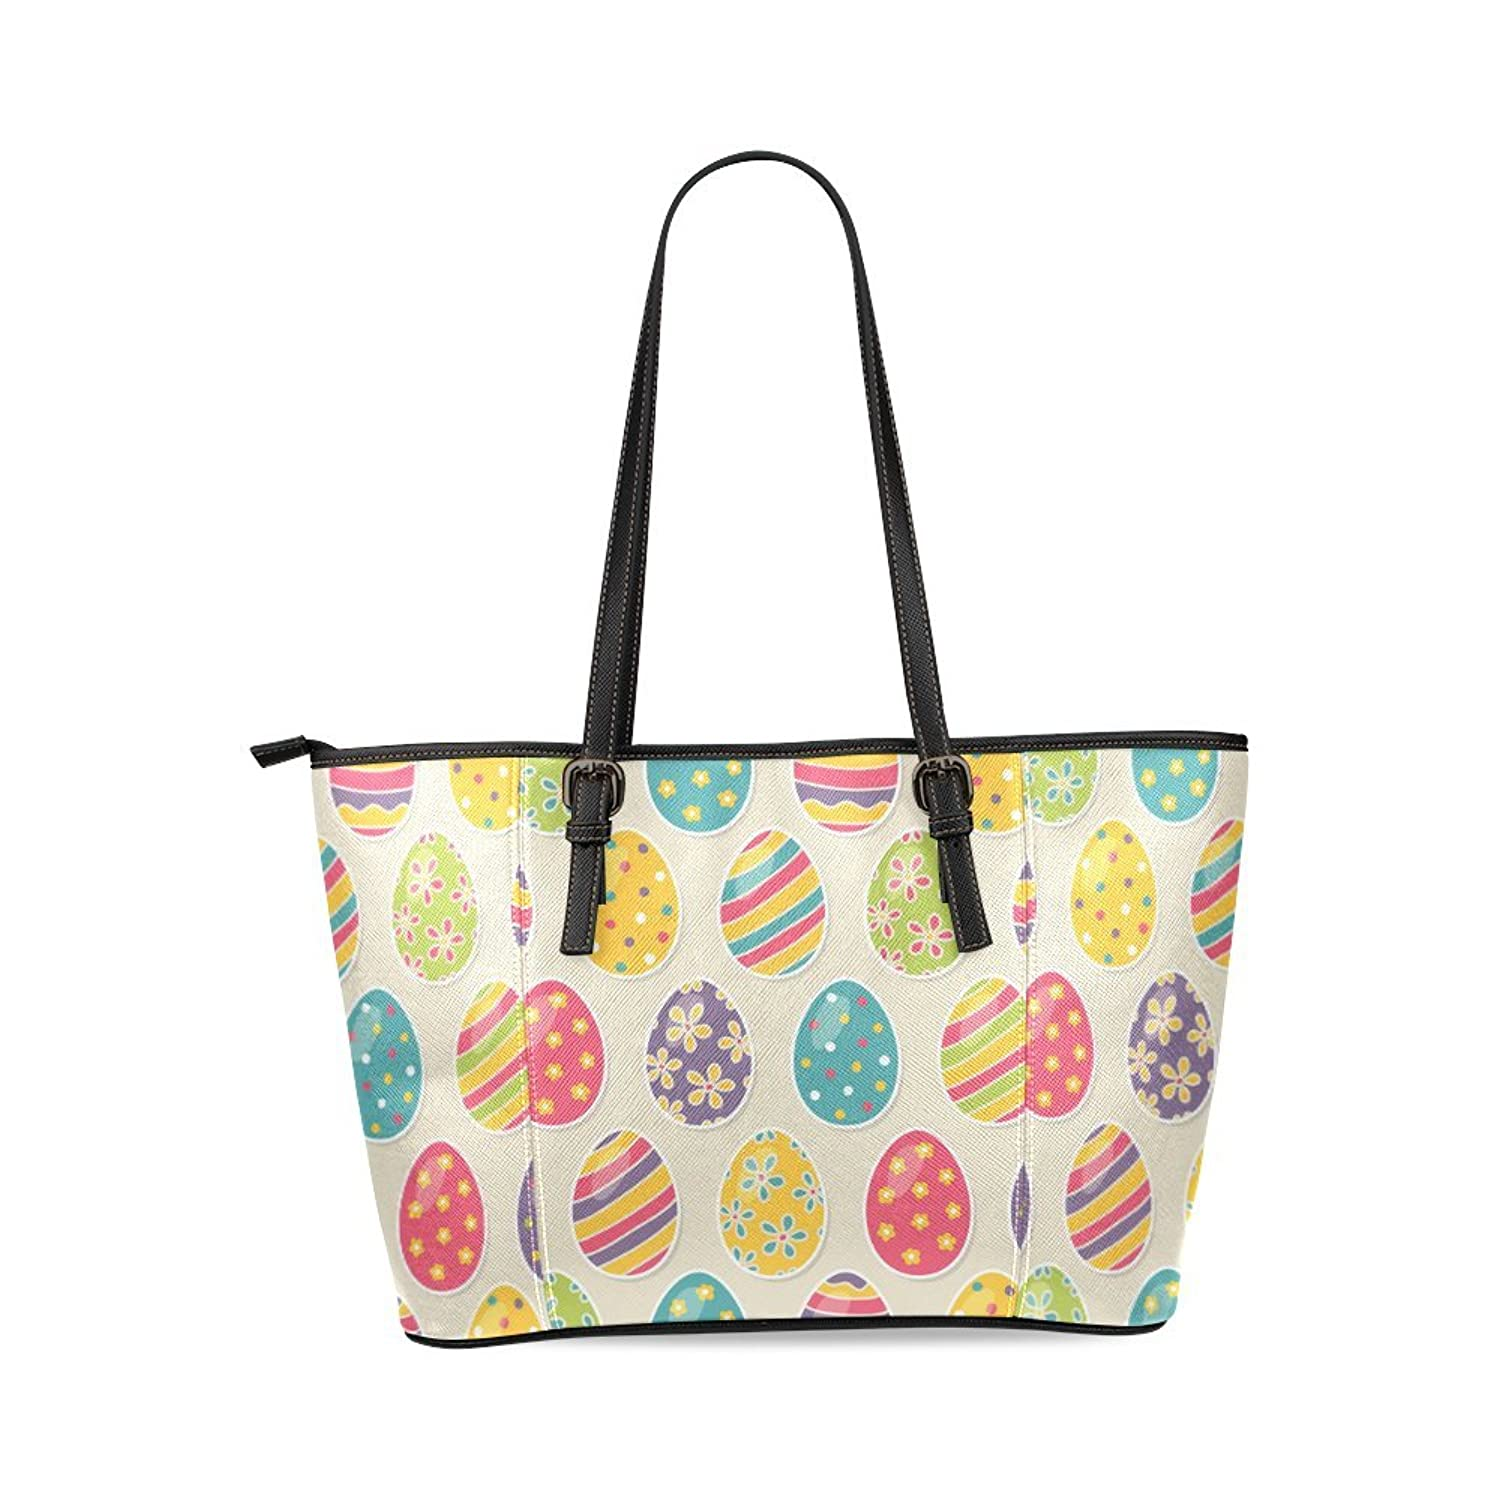 Easter Egg Custom PU Leather Large Tote Bag/Handbag/Shoulder Bag for Fashion Women /Girls